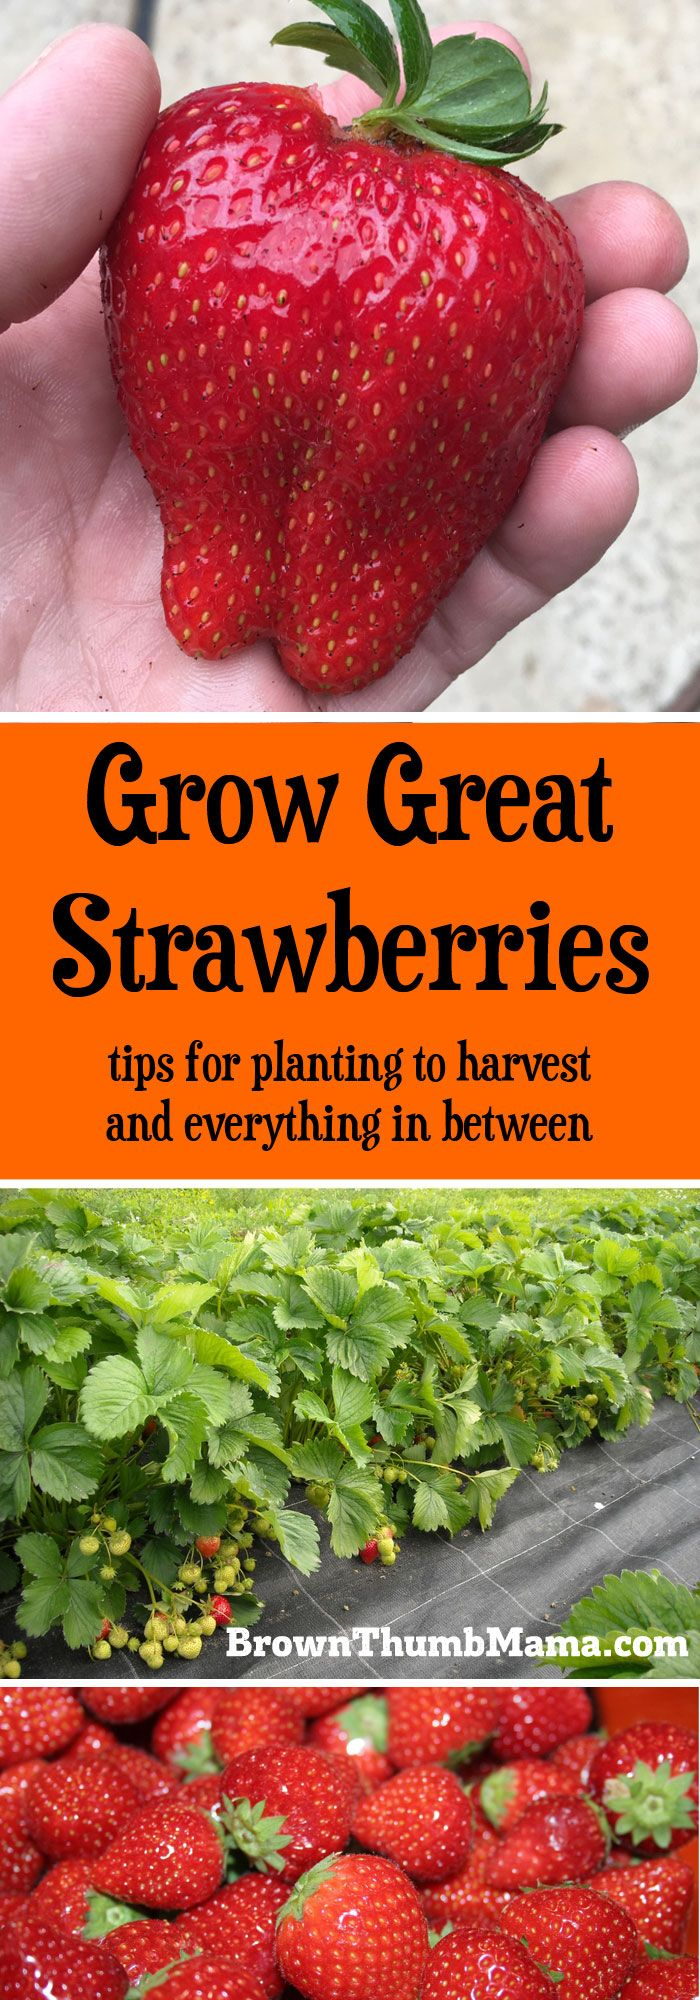 Strawberries are super-easy to grow, but there are a few important tips to keep ...